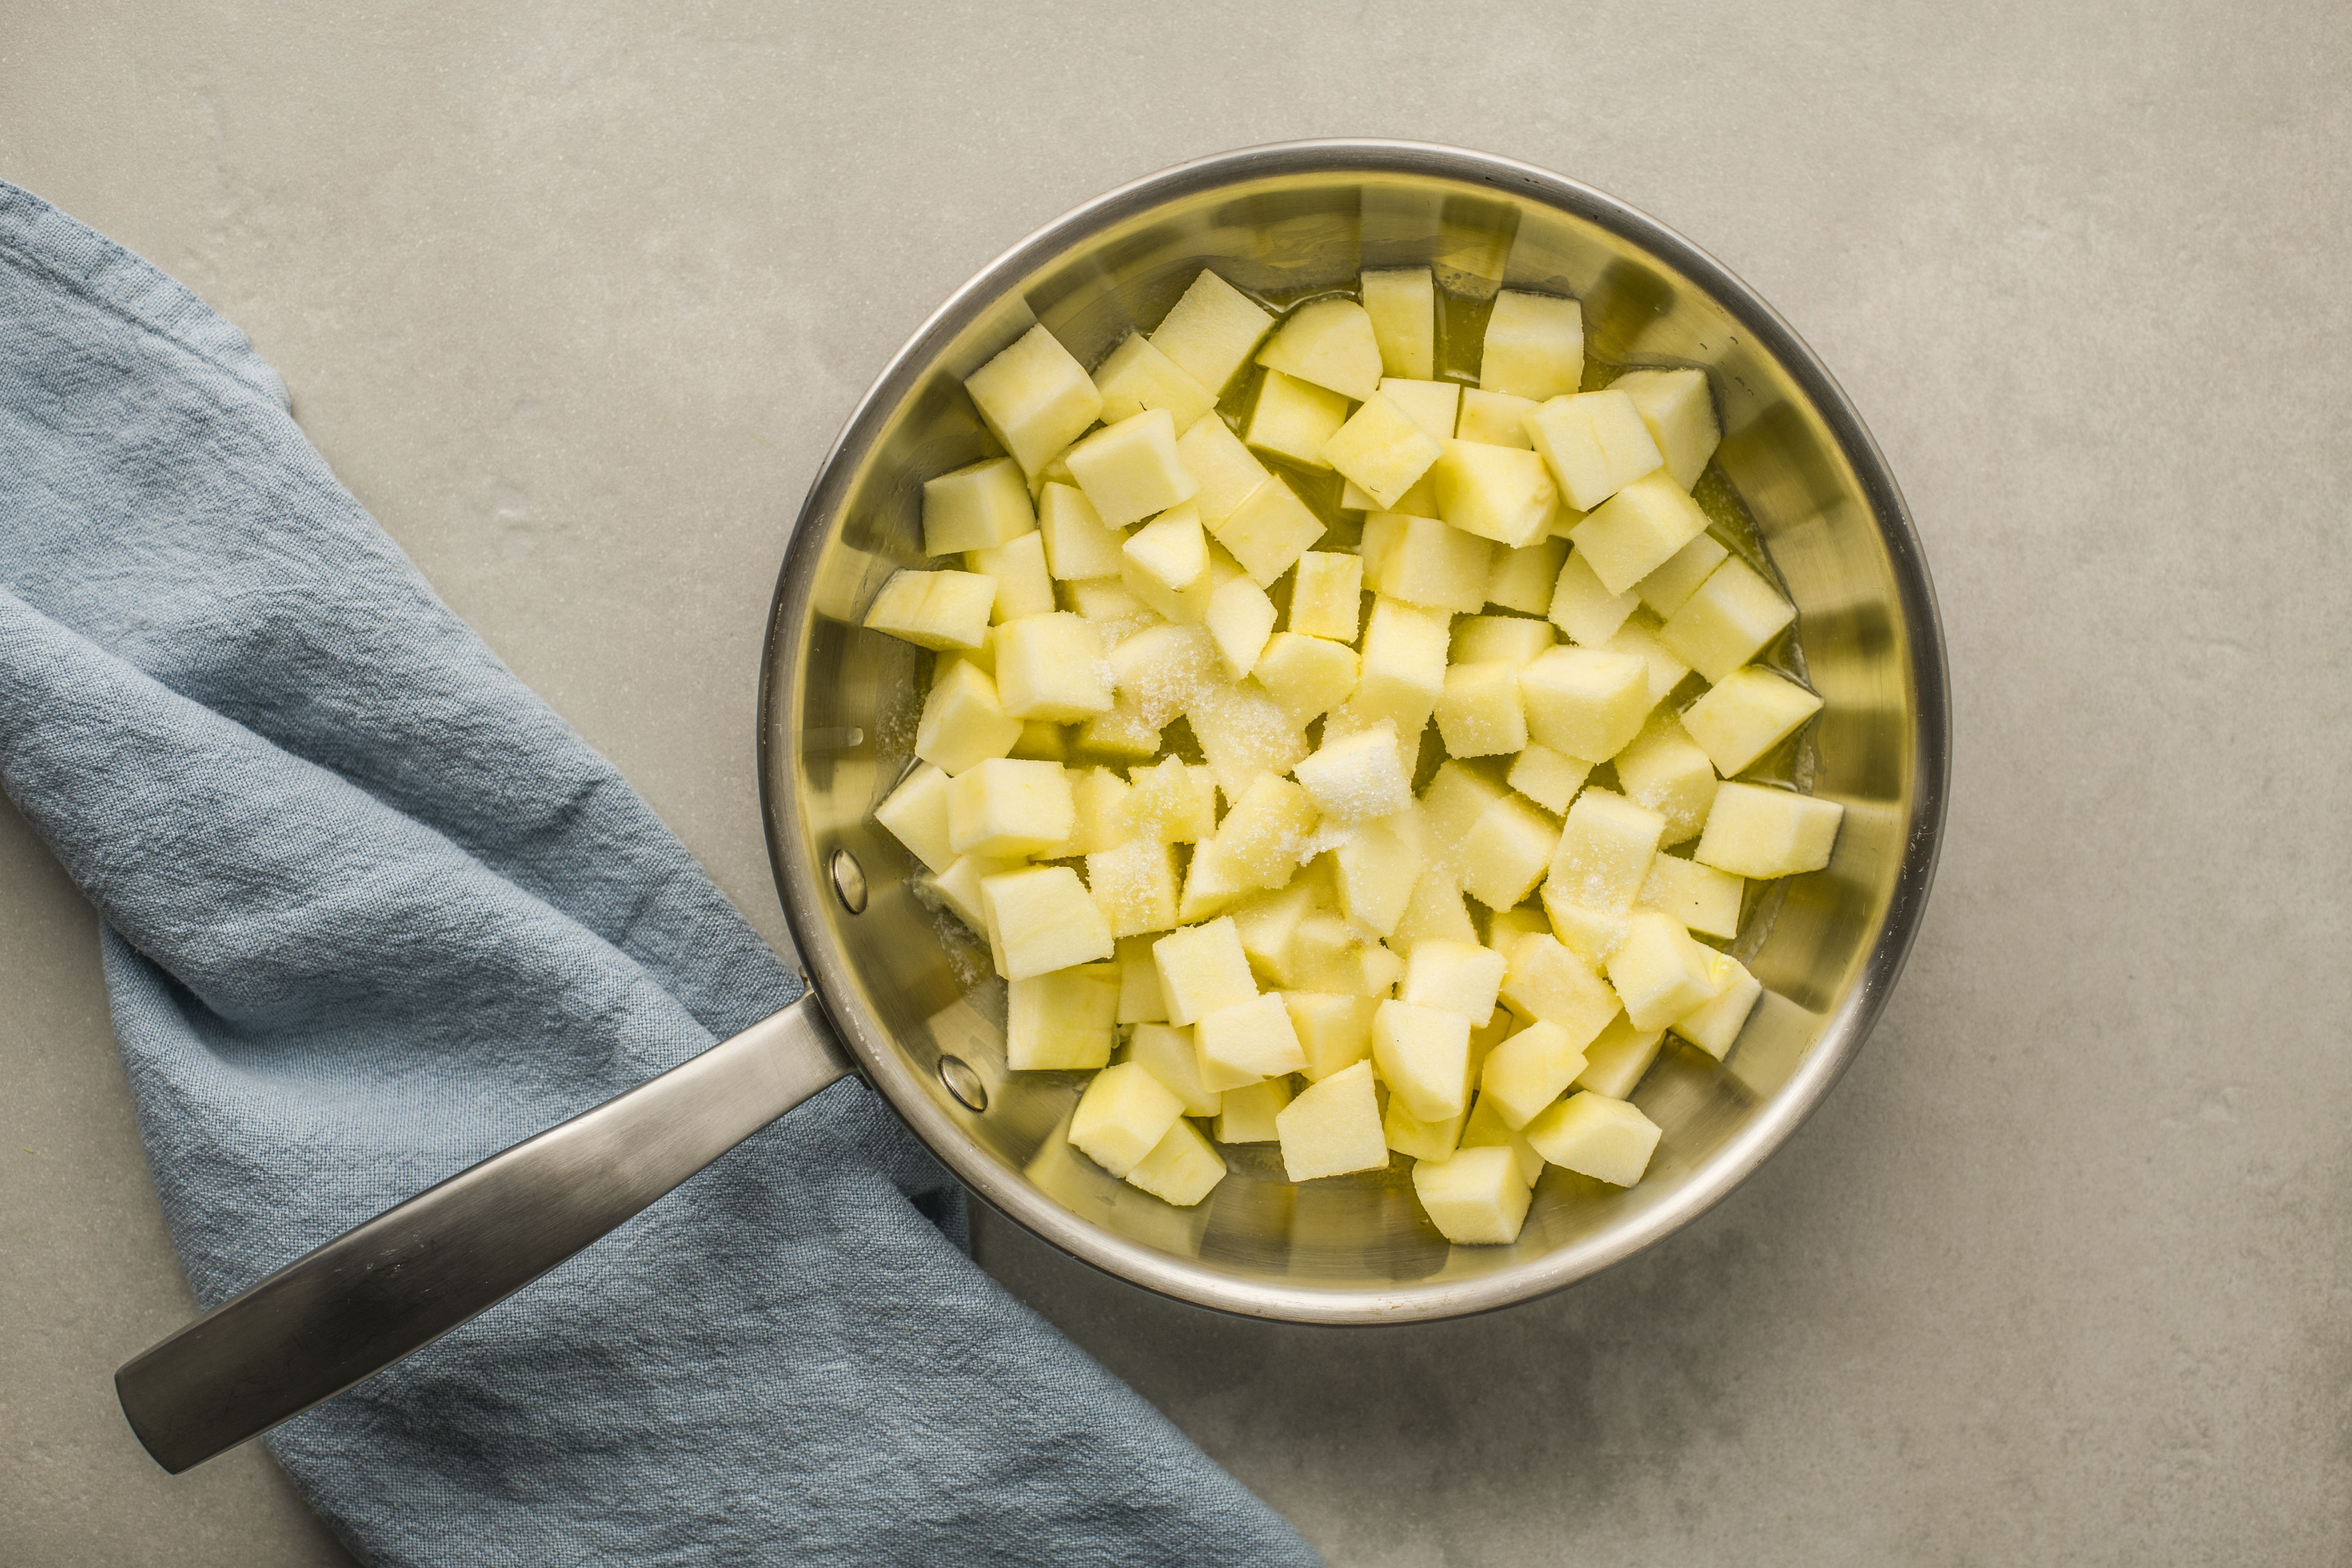 Add apples to pan